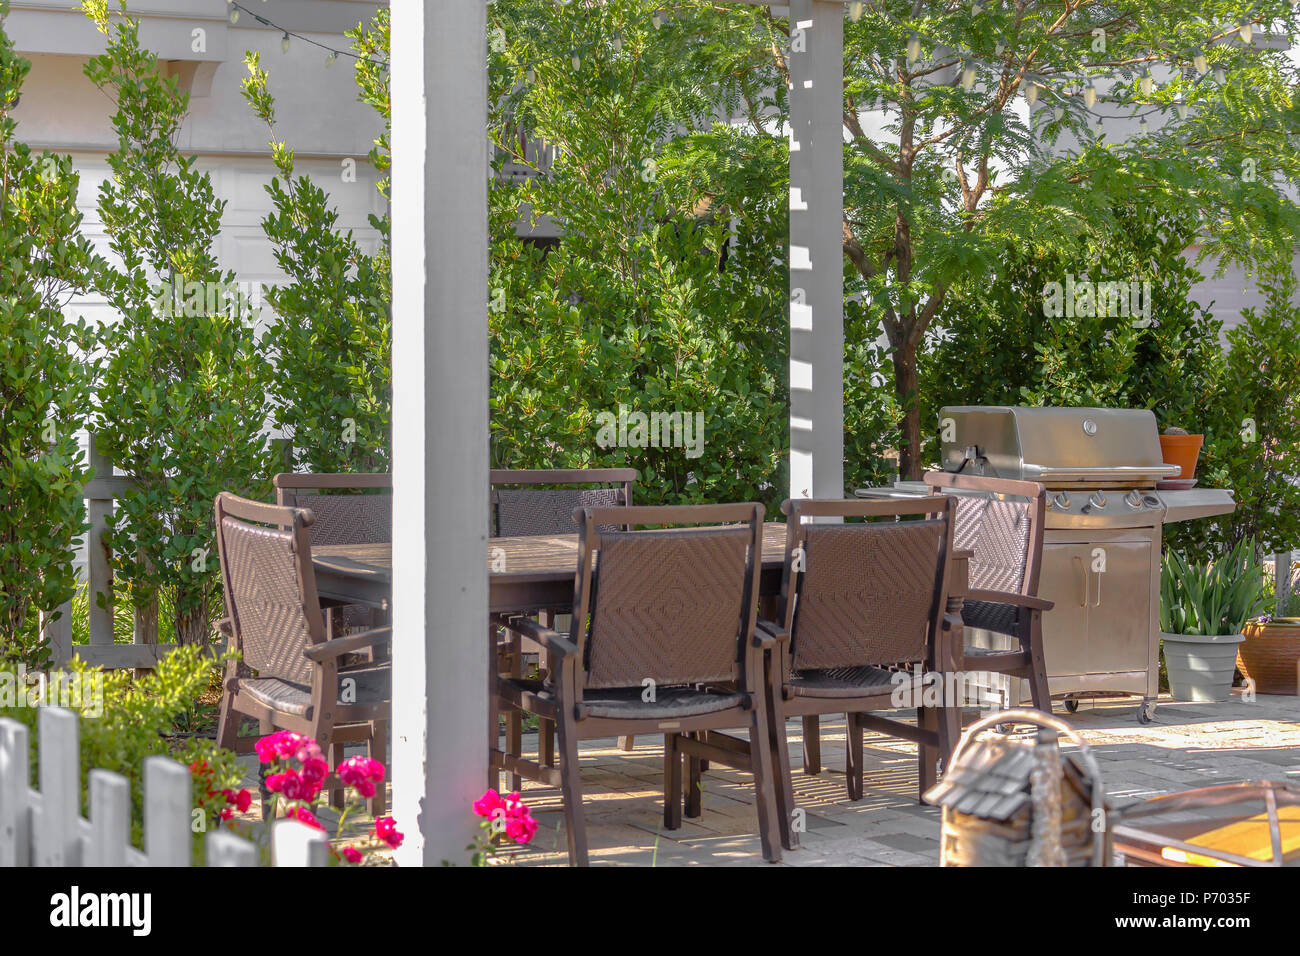 Backyard Chairs Patio Chairs And Bbq Outside Stock Photo 210829515 Alamy